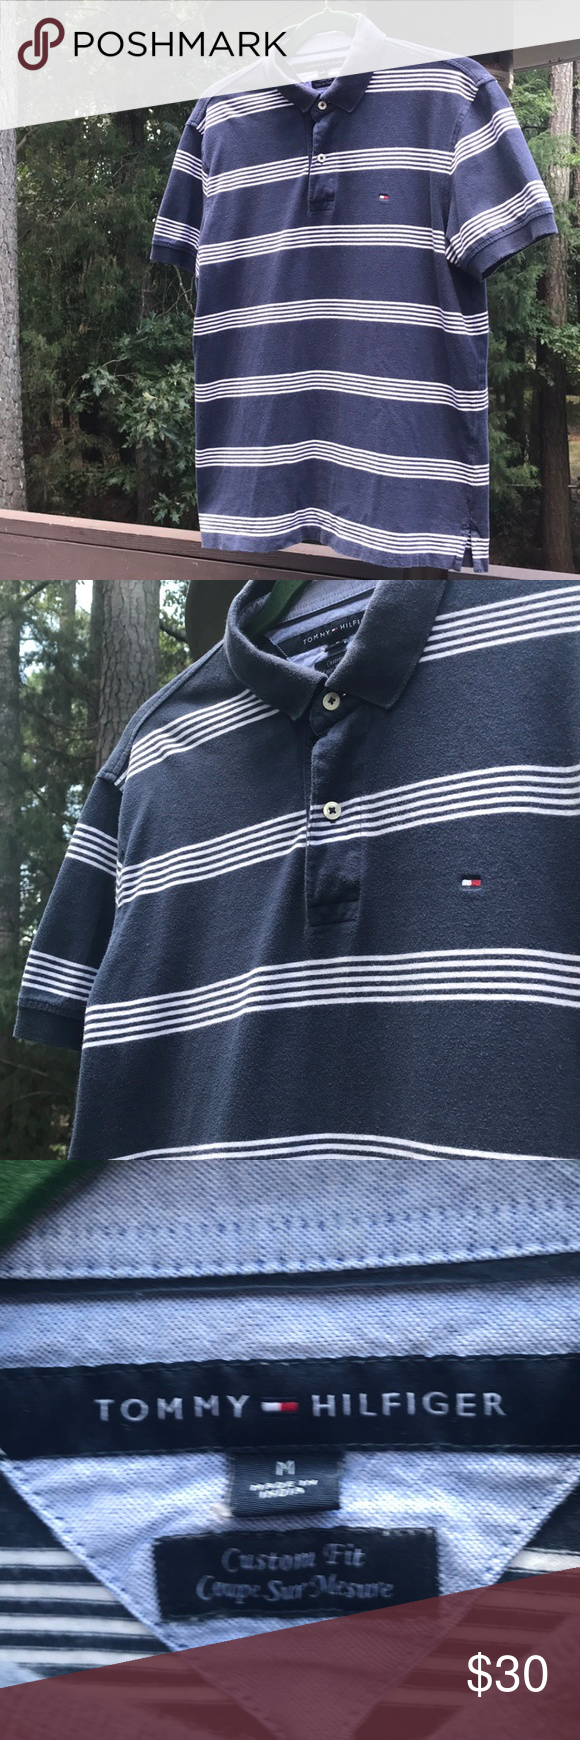 f159bb293fae Vintage Tommy Hilfiger Polo Shirt Men's Vintage Tommy Hilfiger Striped Polo  Shirt. Excellent Condition.